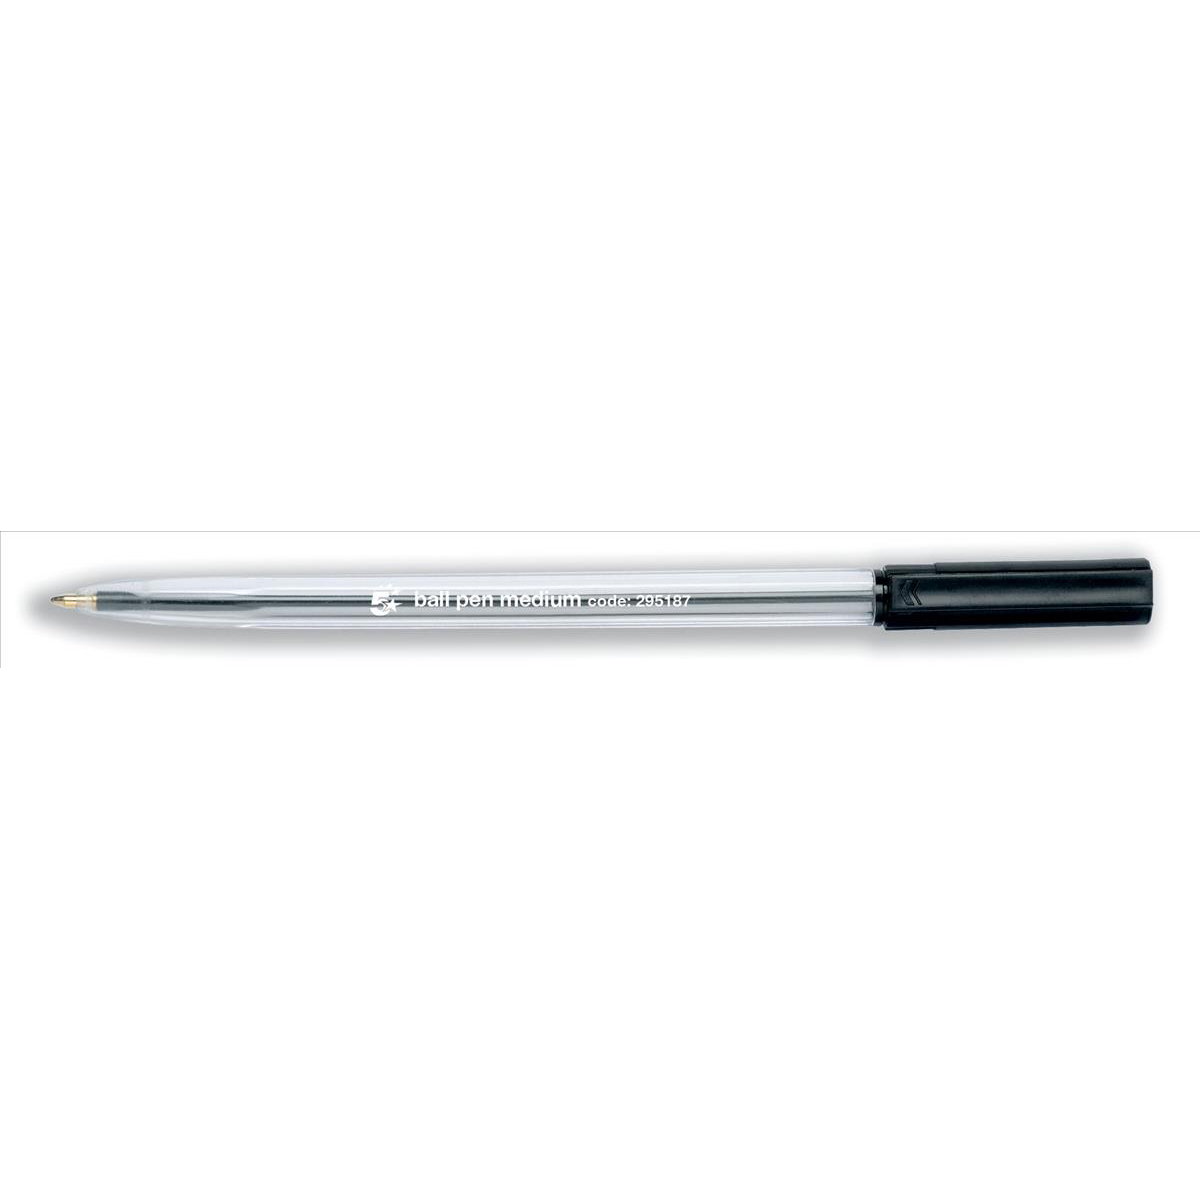 5 Star Office Ball Pen Clear Barrel Medium 1.0mm Tip 0.7mm Line Black Pack 50